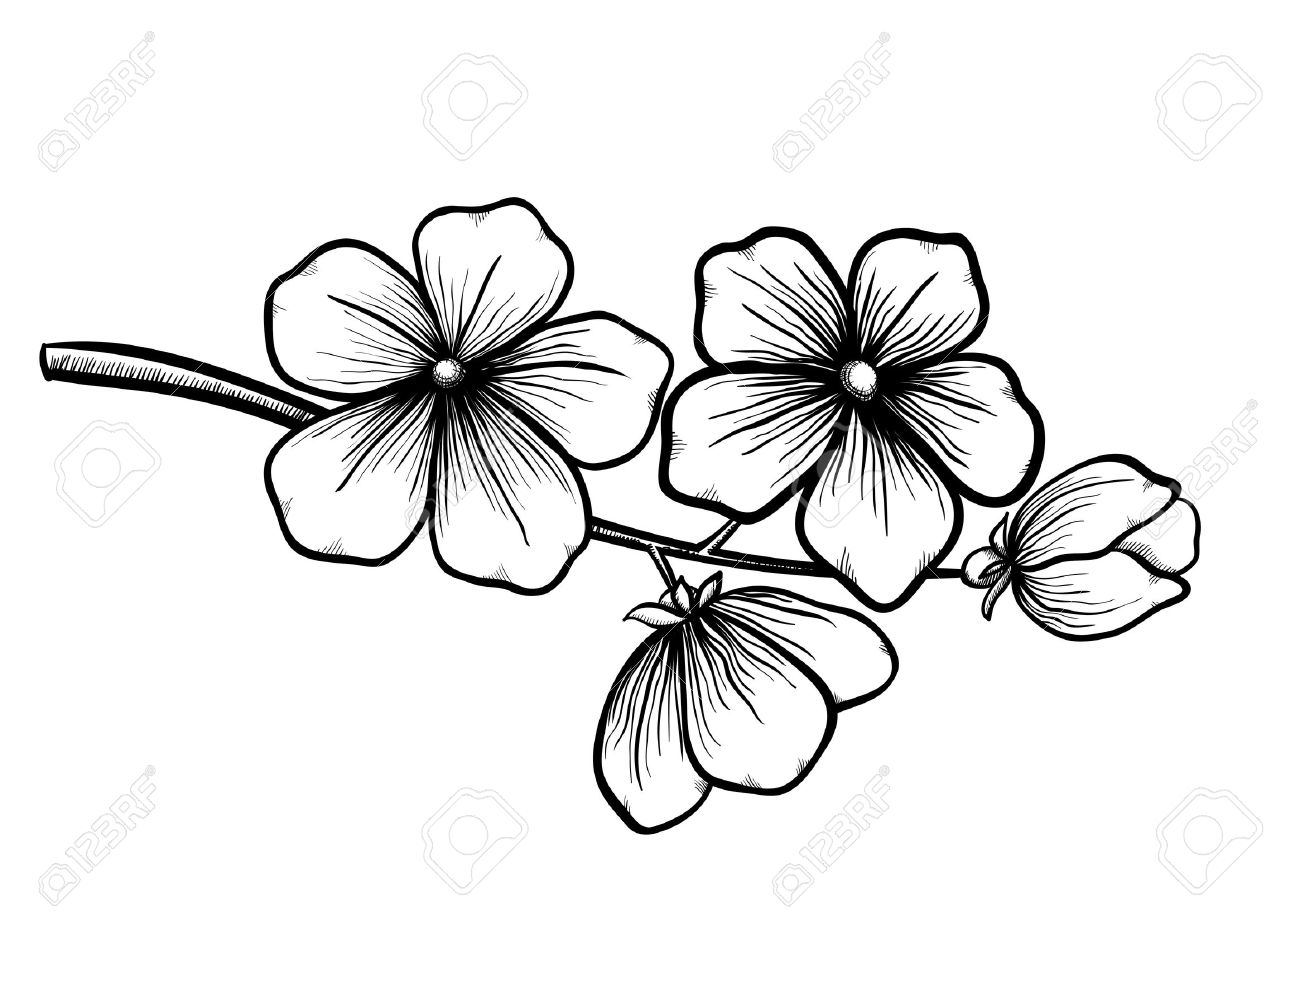 1300x1004 Branch Of A Blossoming Tree In Graphic Black White Style, Drawing